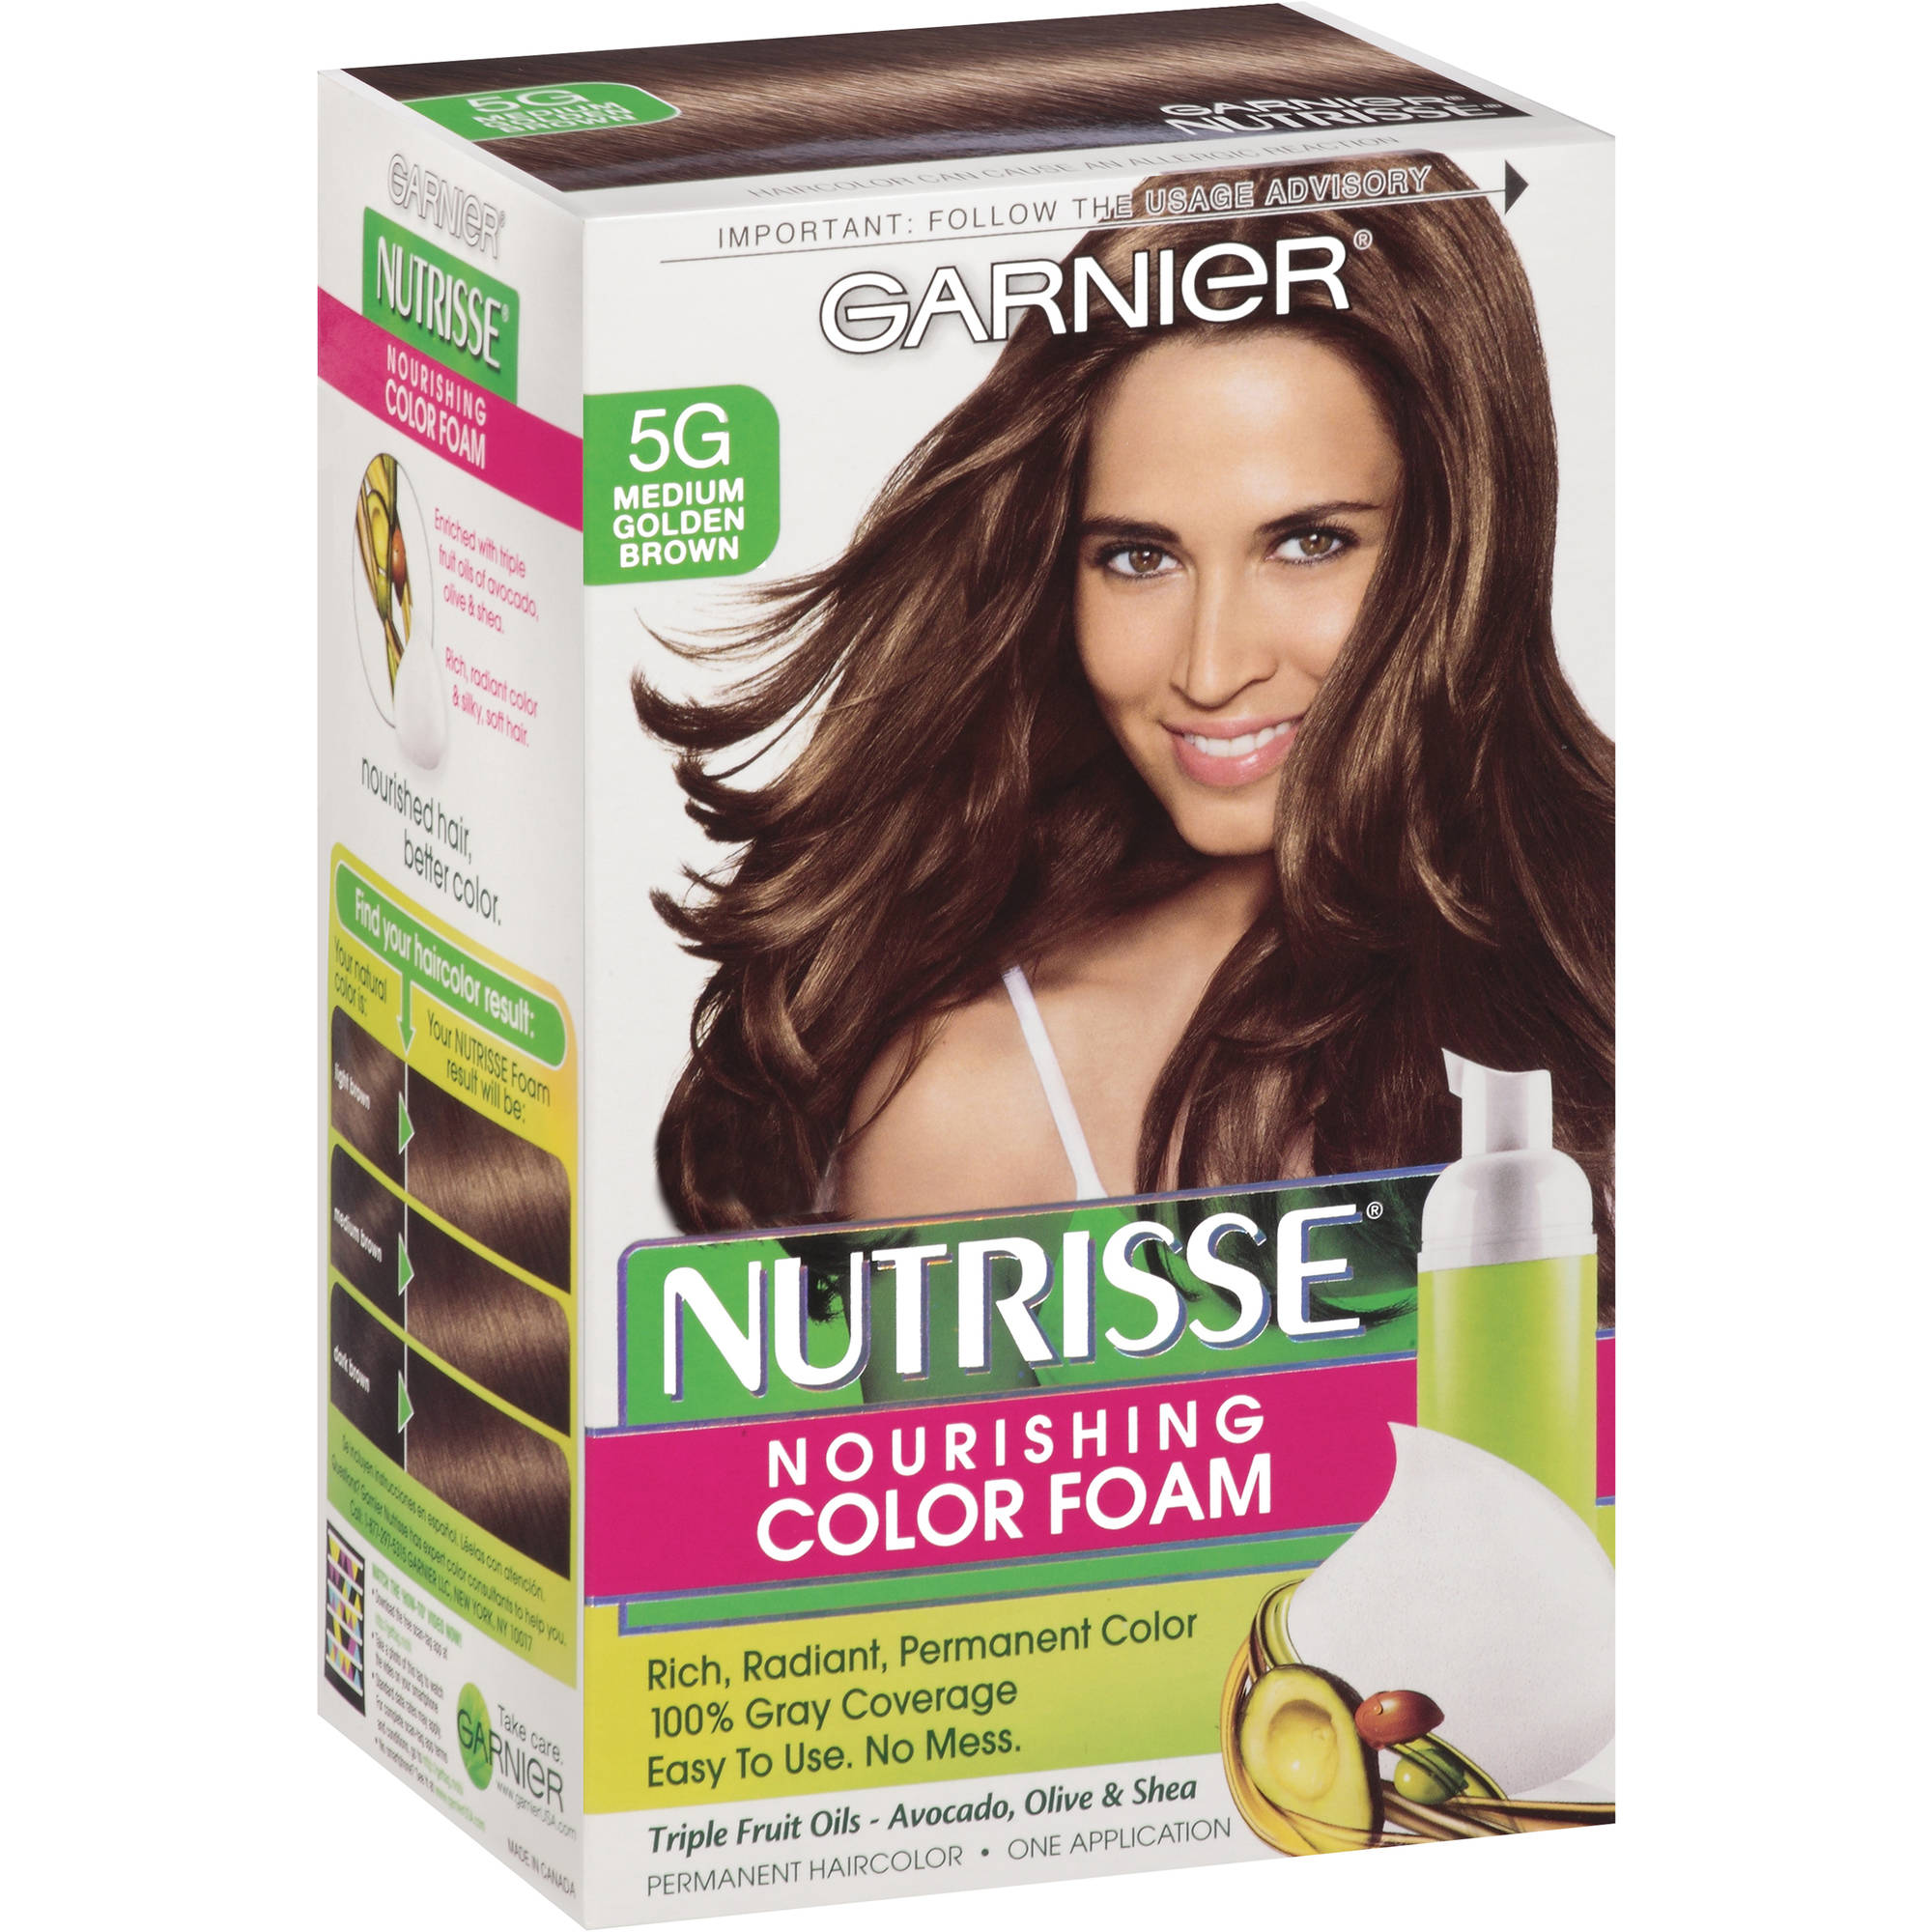 Garnier Nutrisse Nourishing Color Foam Haircolor